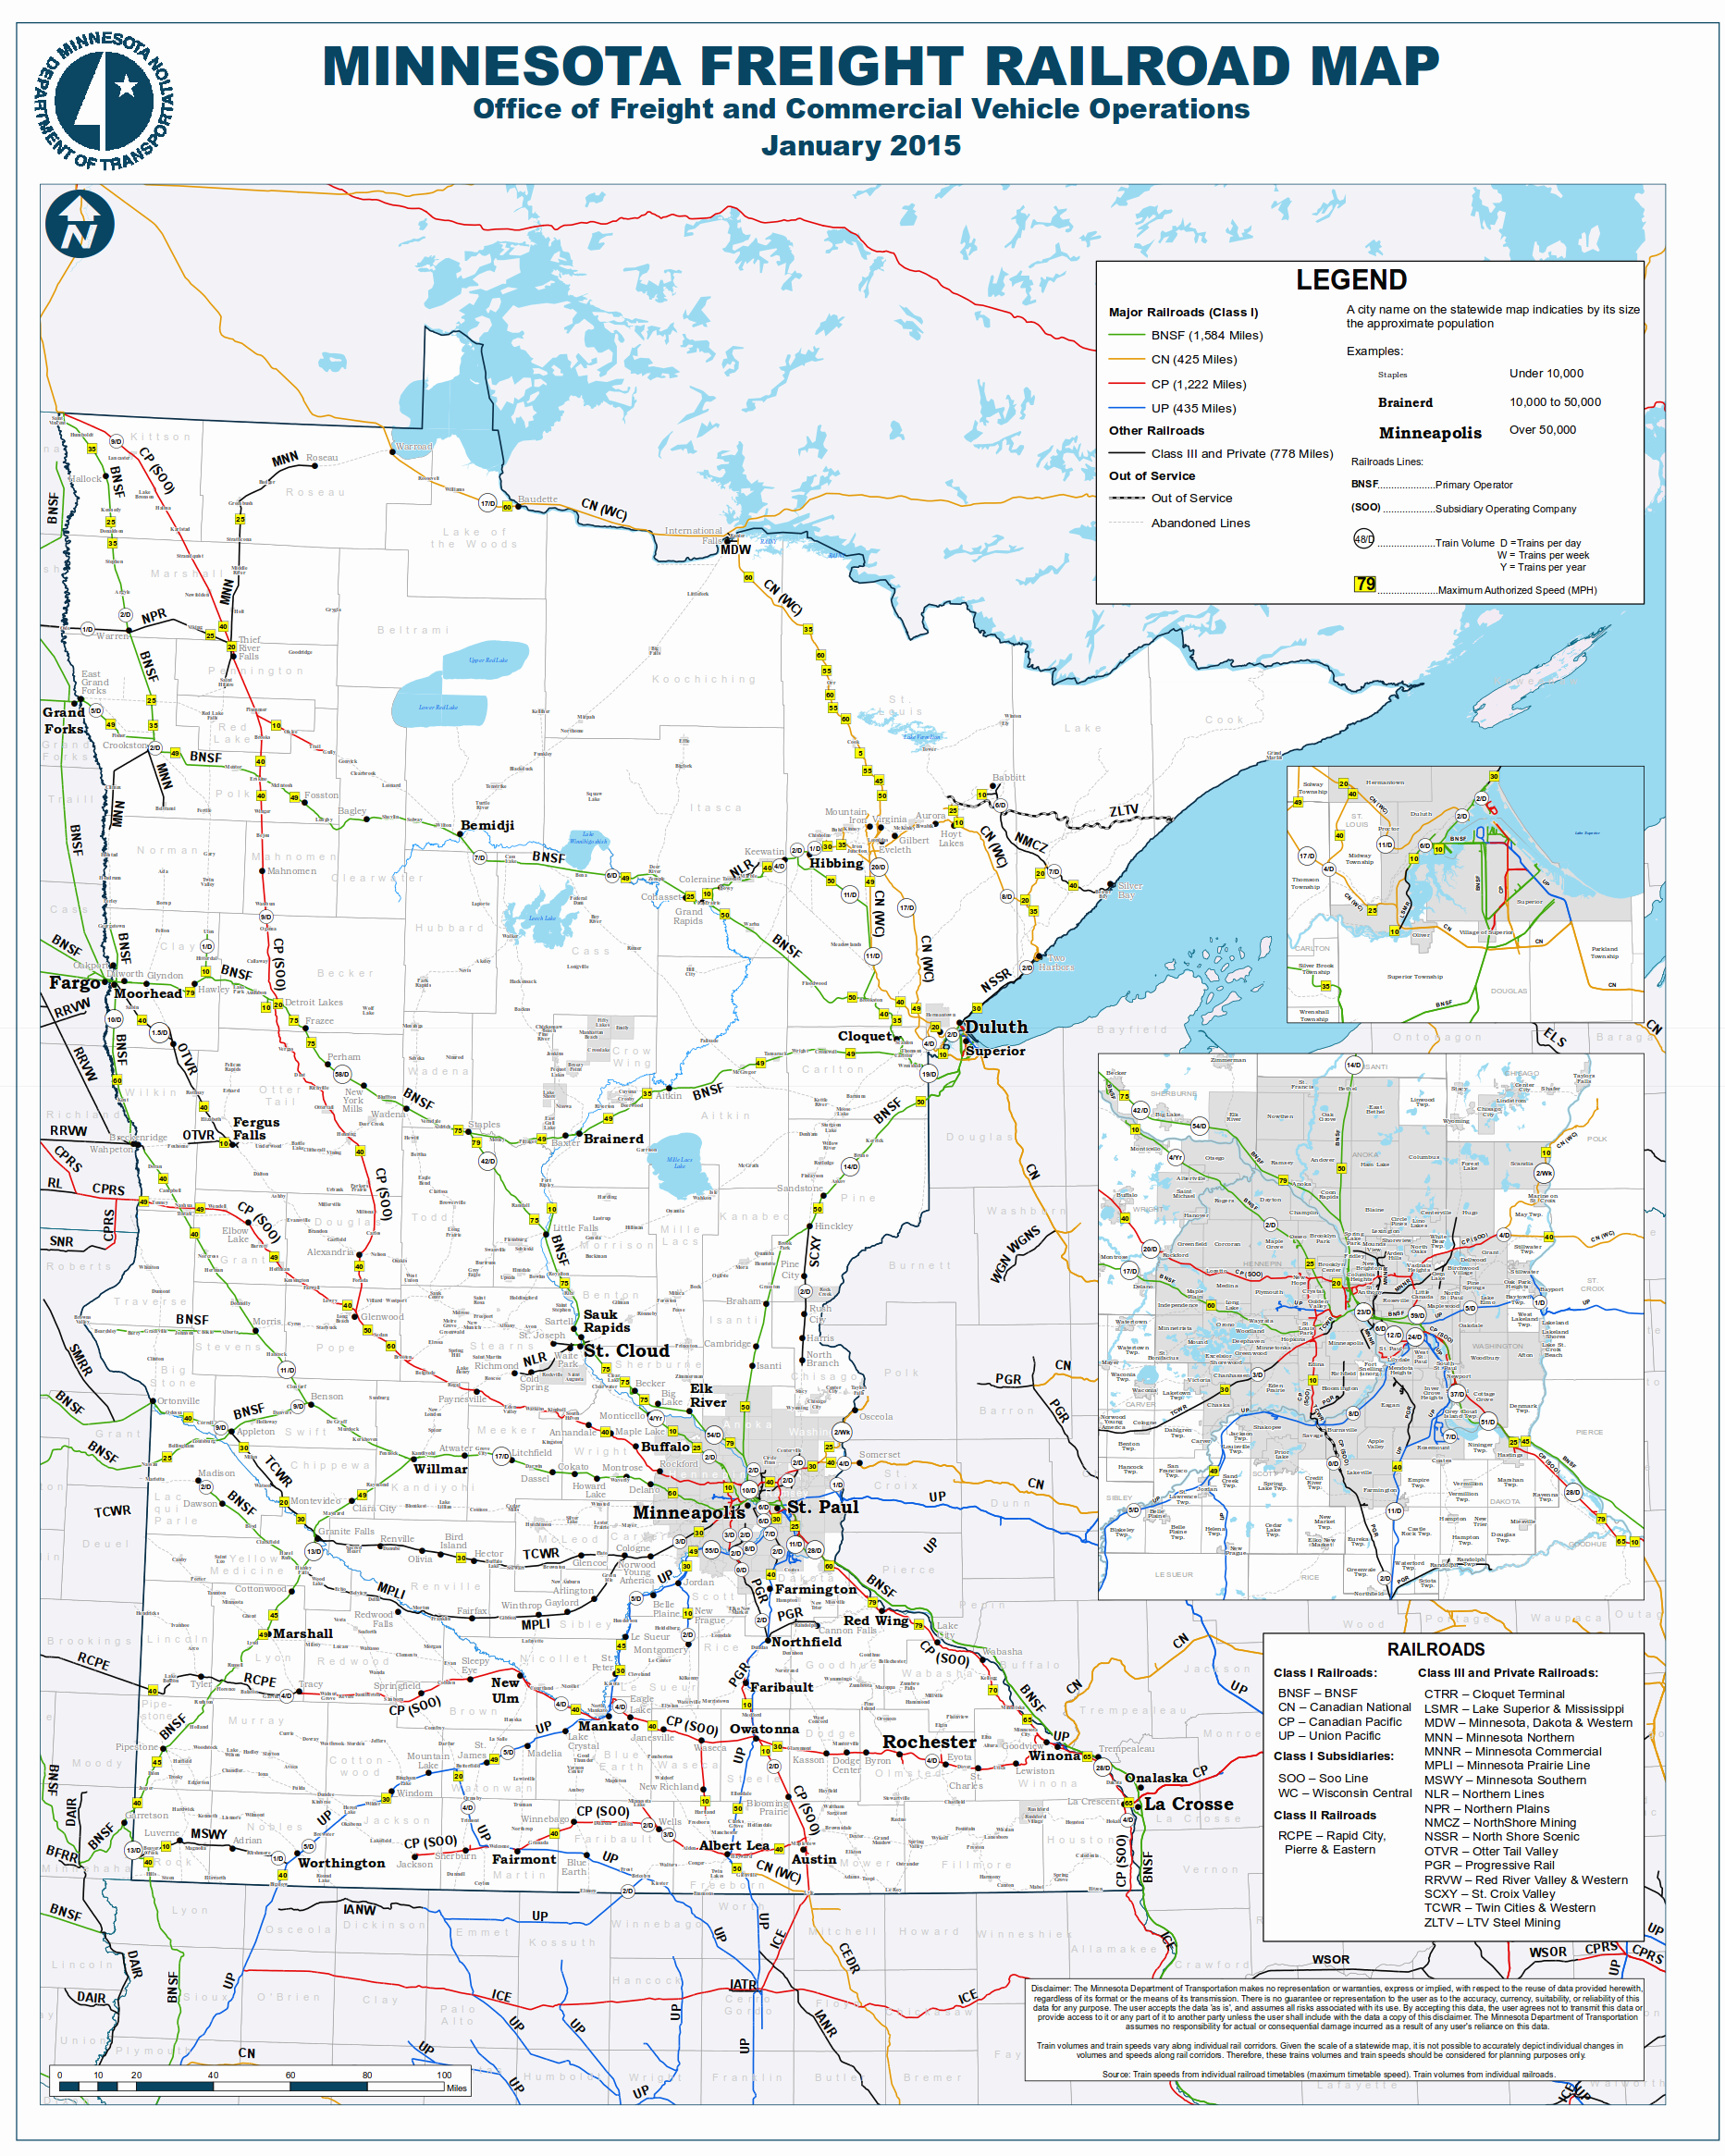 Rail Ramps Locations Intermodal Freight Transportation Corporate - Us passenger train map